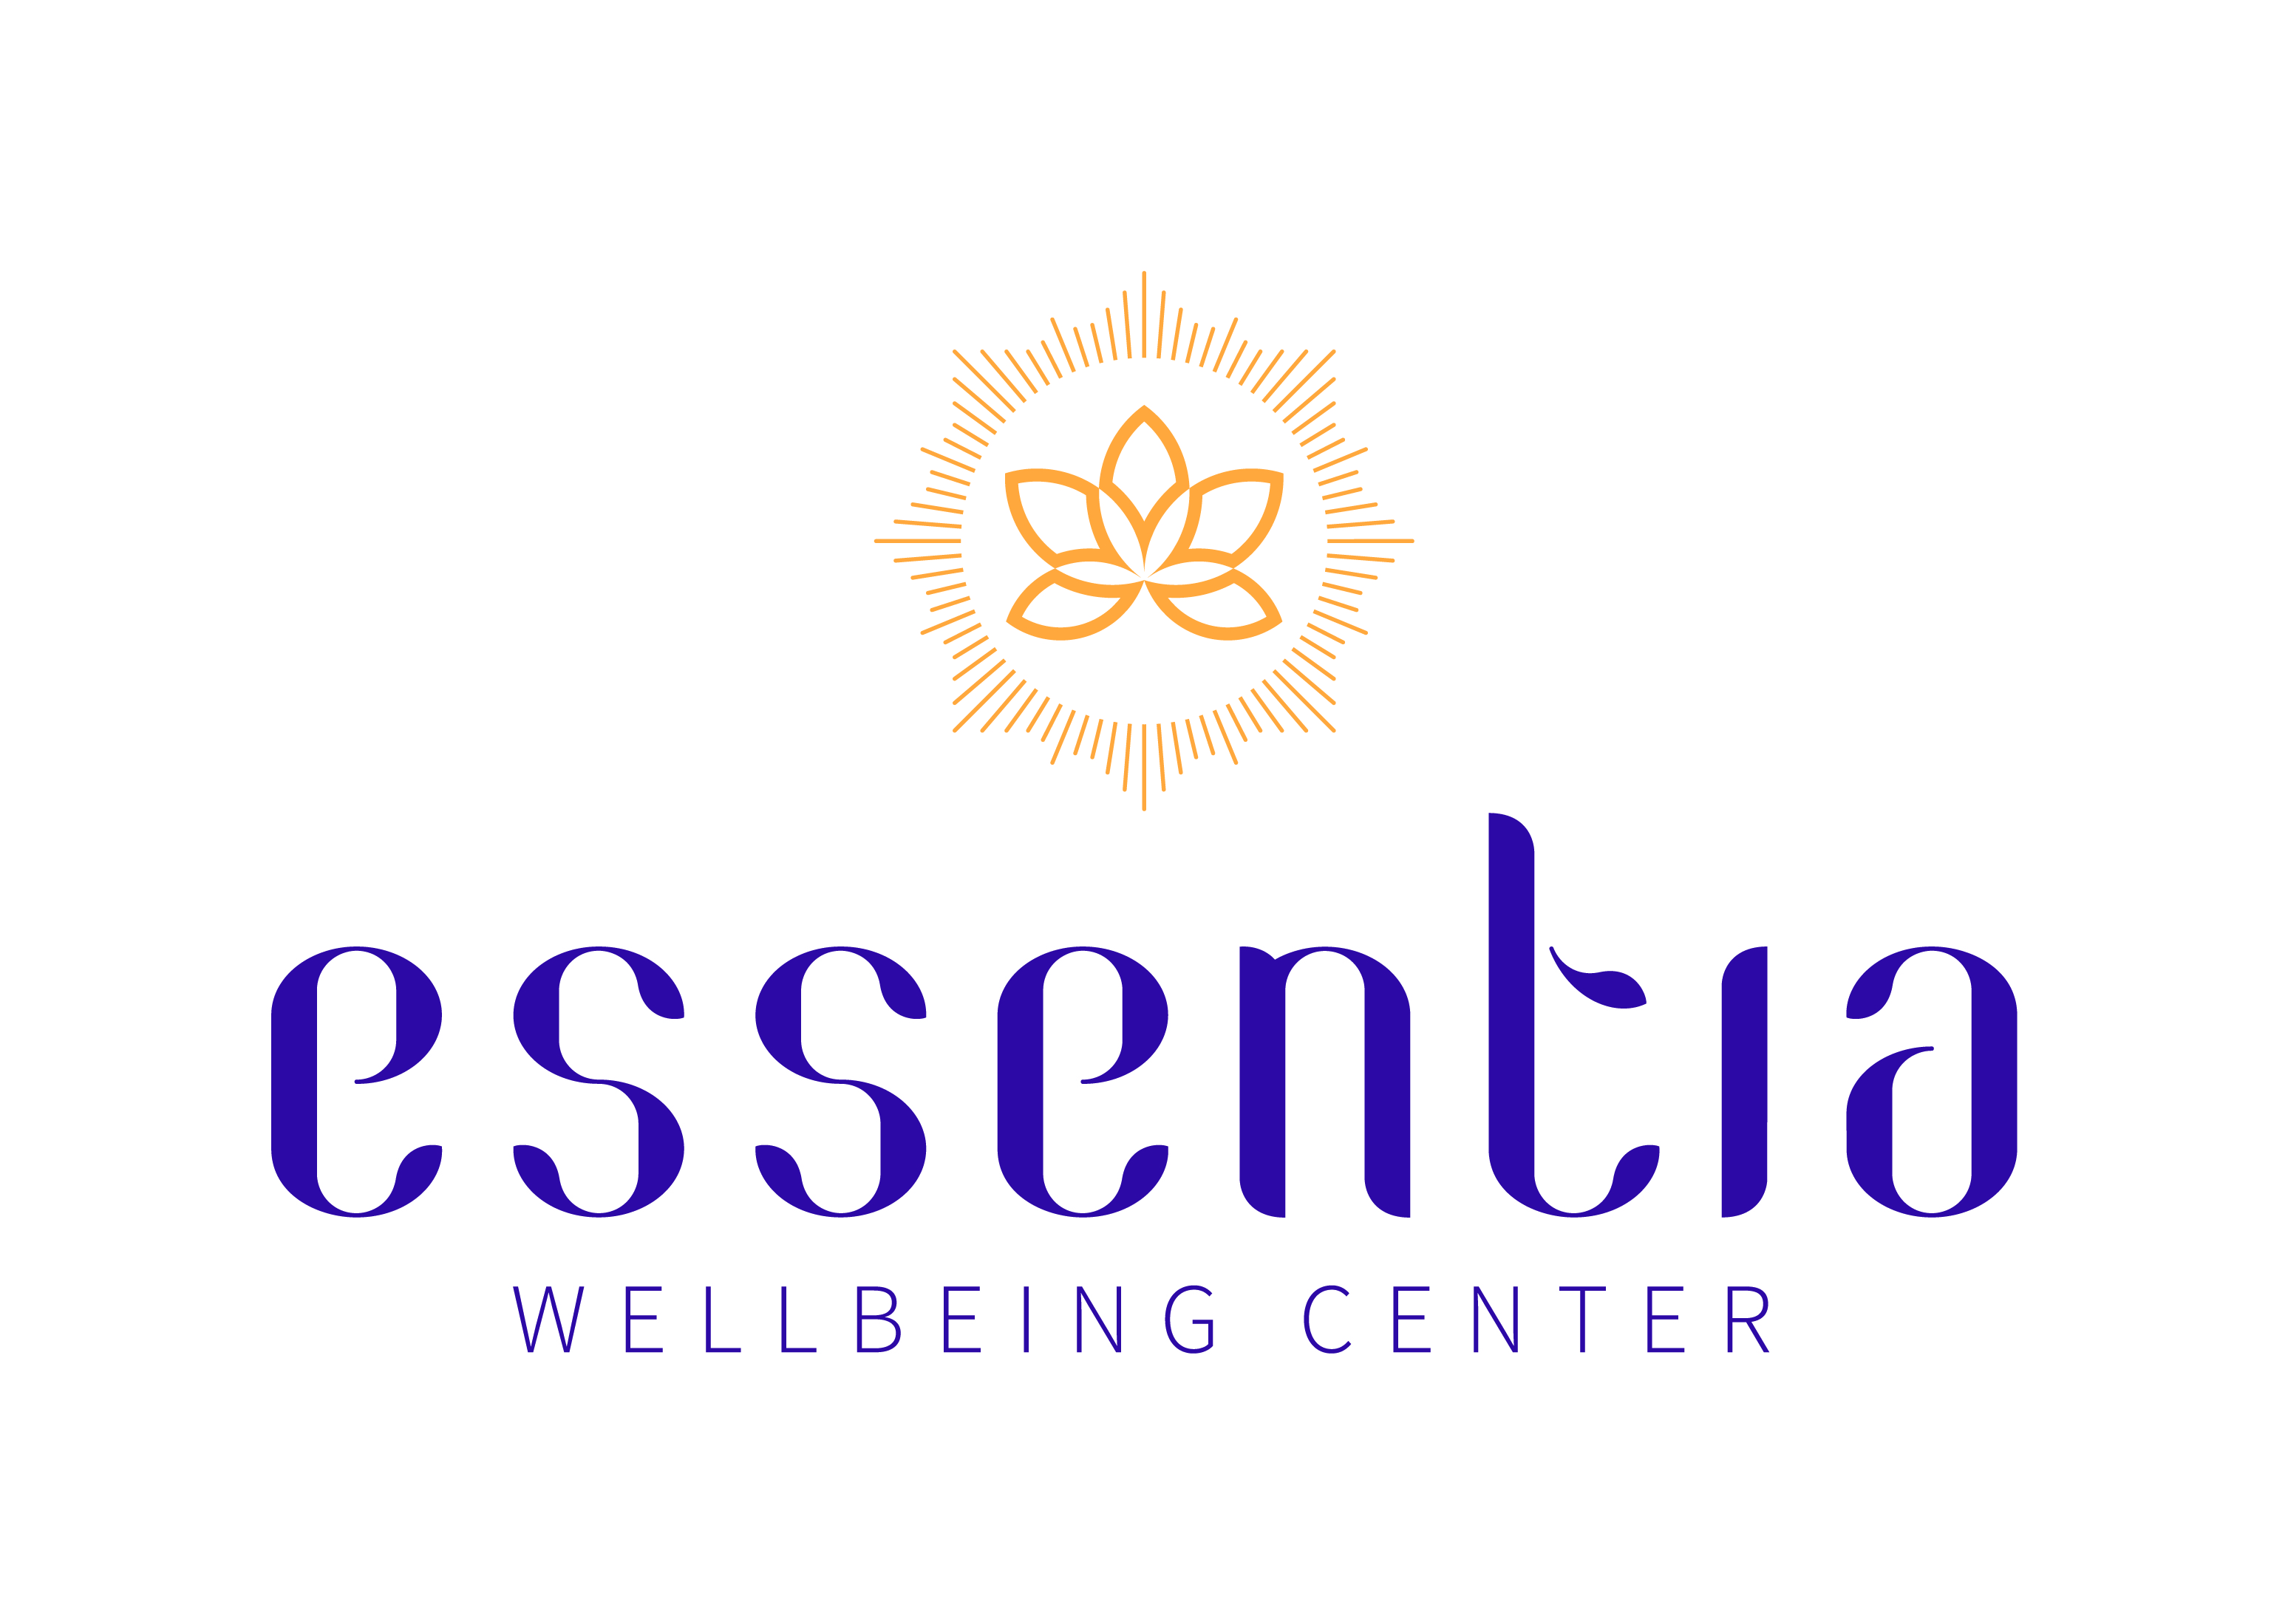 More about Essentia Wellbeing Center, JLT